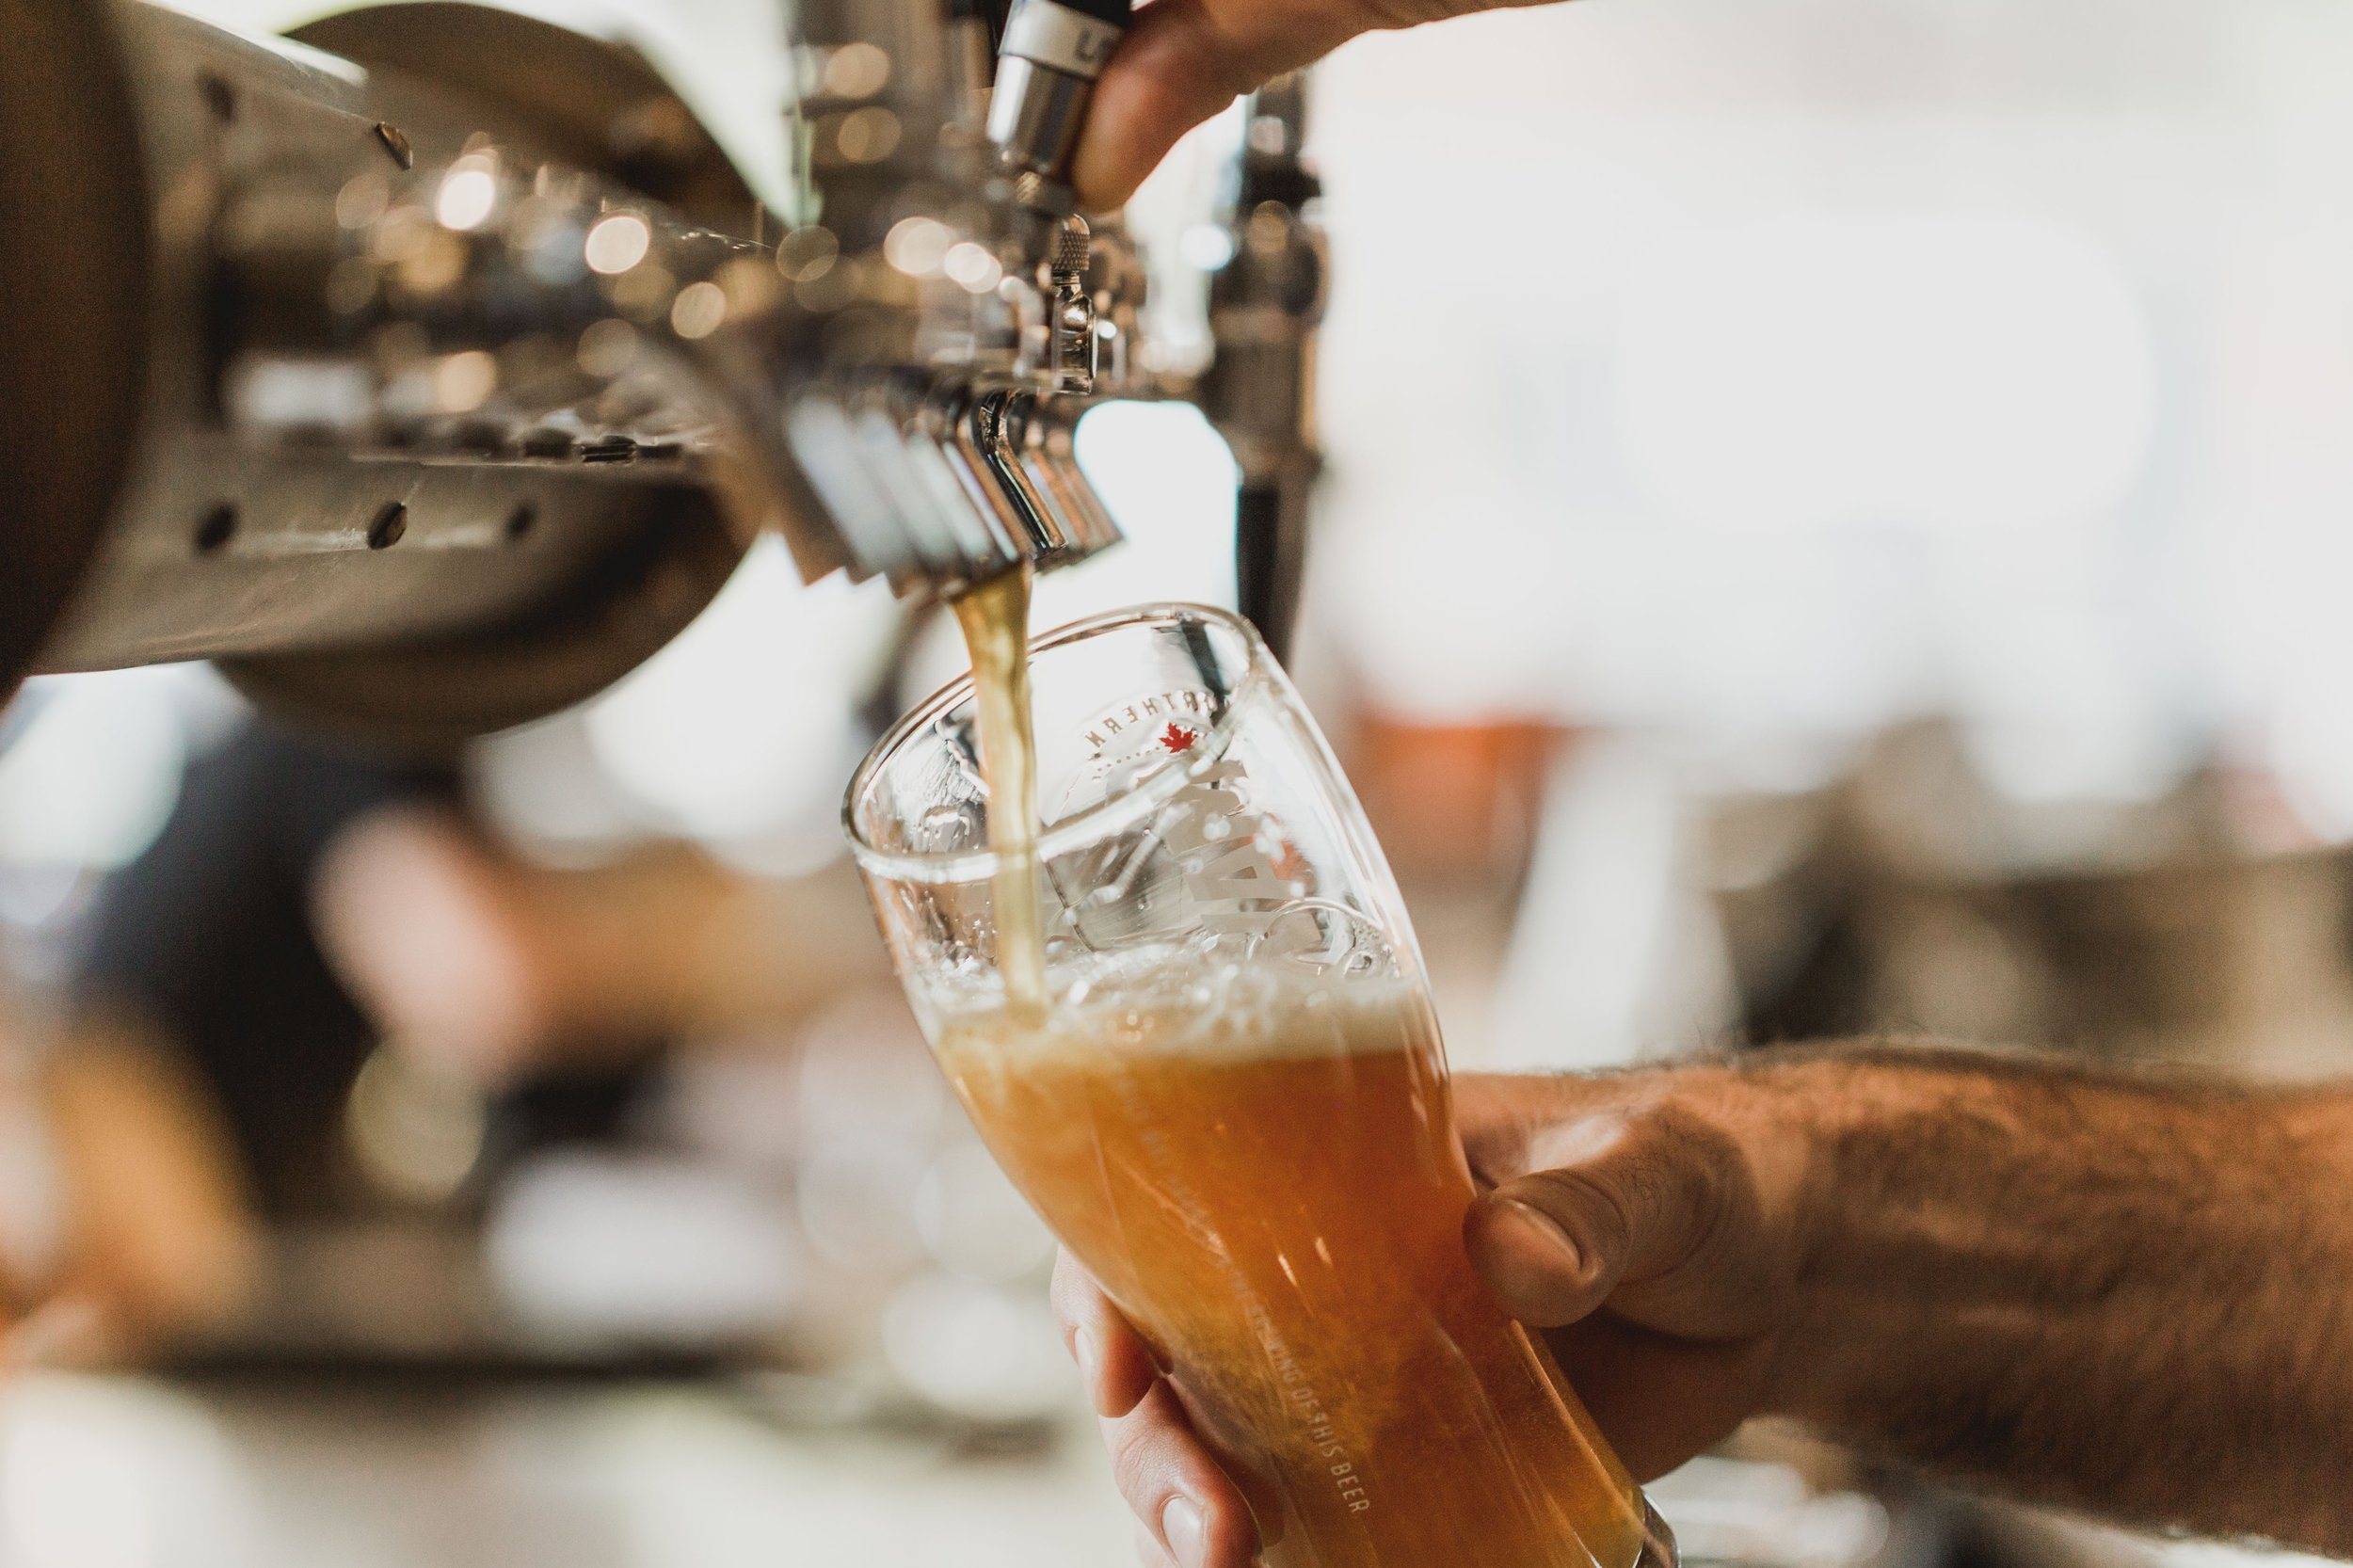 pouring-pint-of-beer_4460x4460.jpg